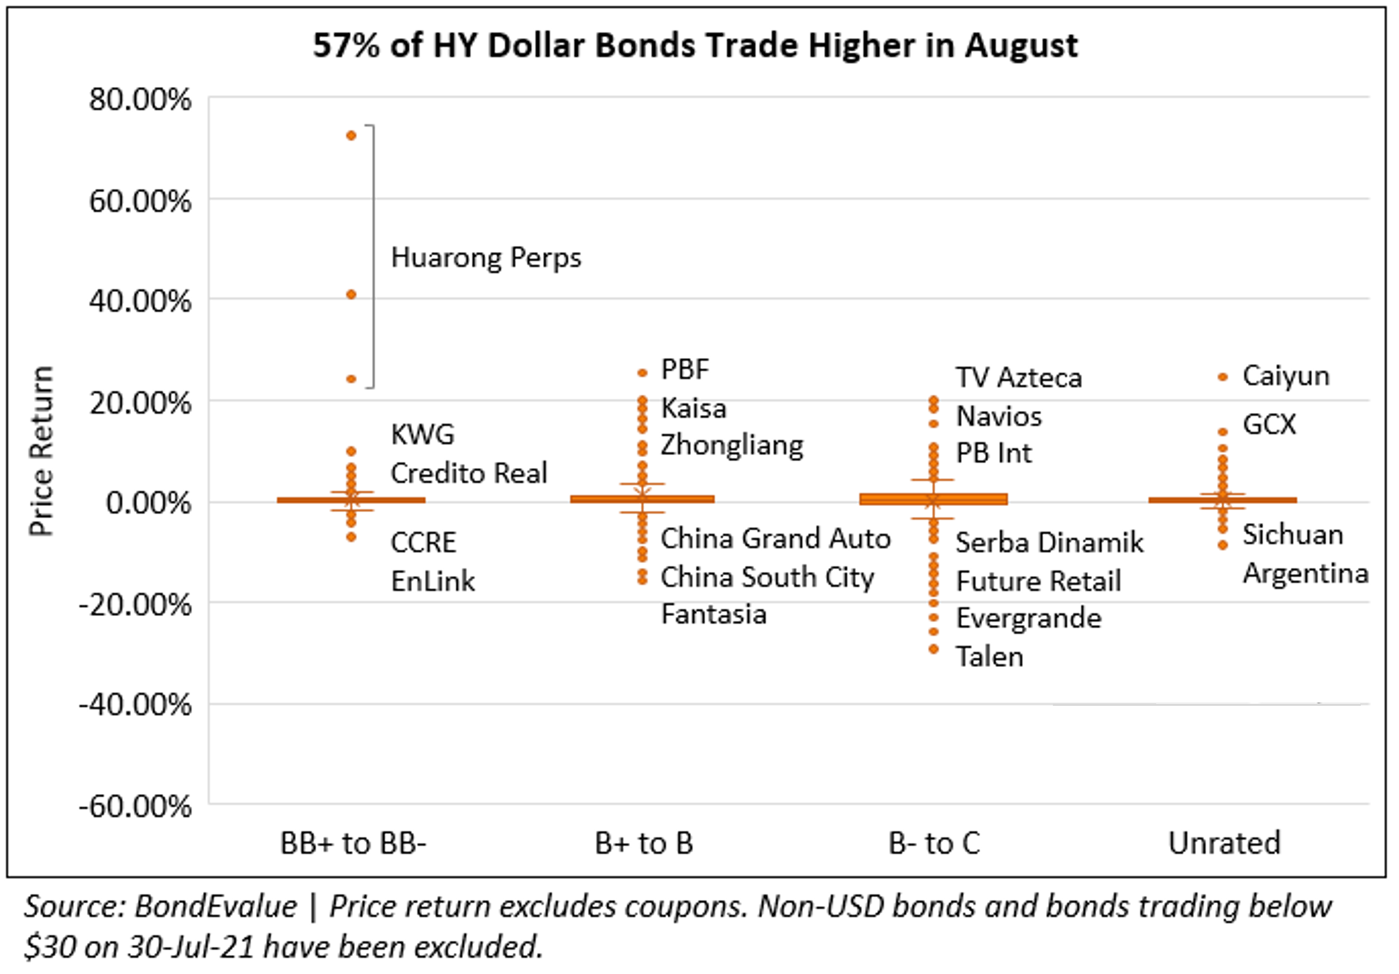 57% HY bonds trade higher in Aug